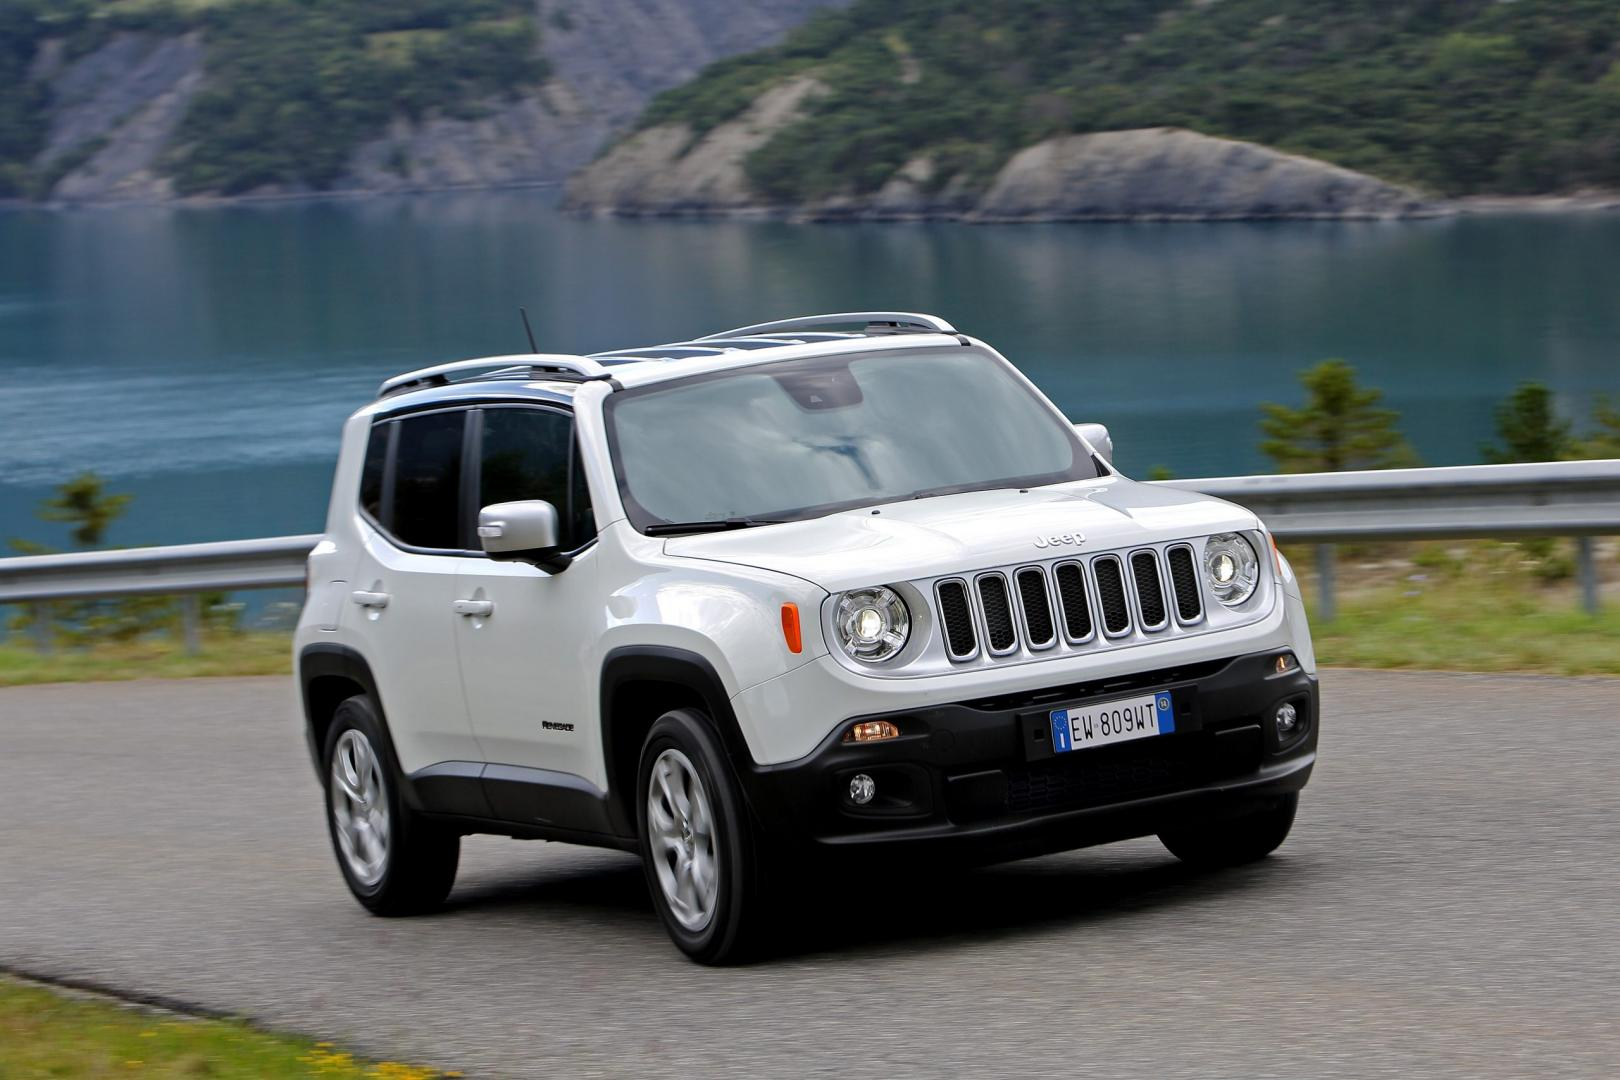 Jeep Renegade 1.4 MultiAir 140 pk DDCT Limited (2018)